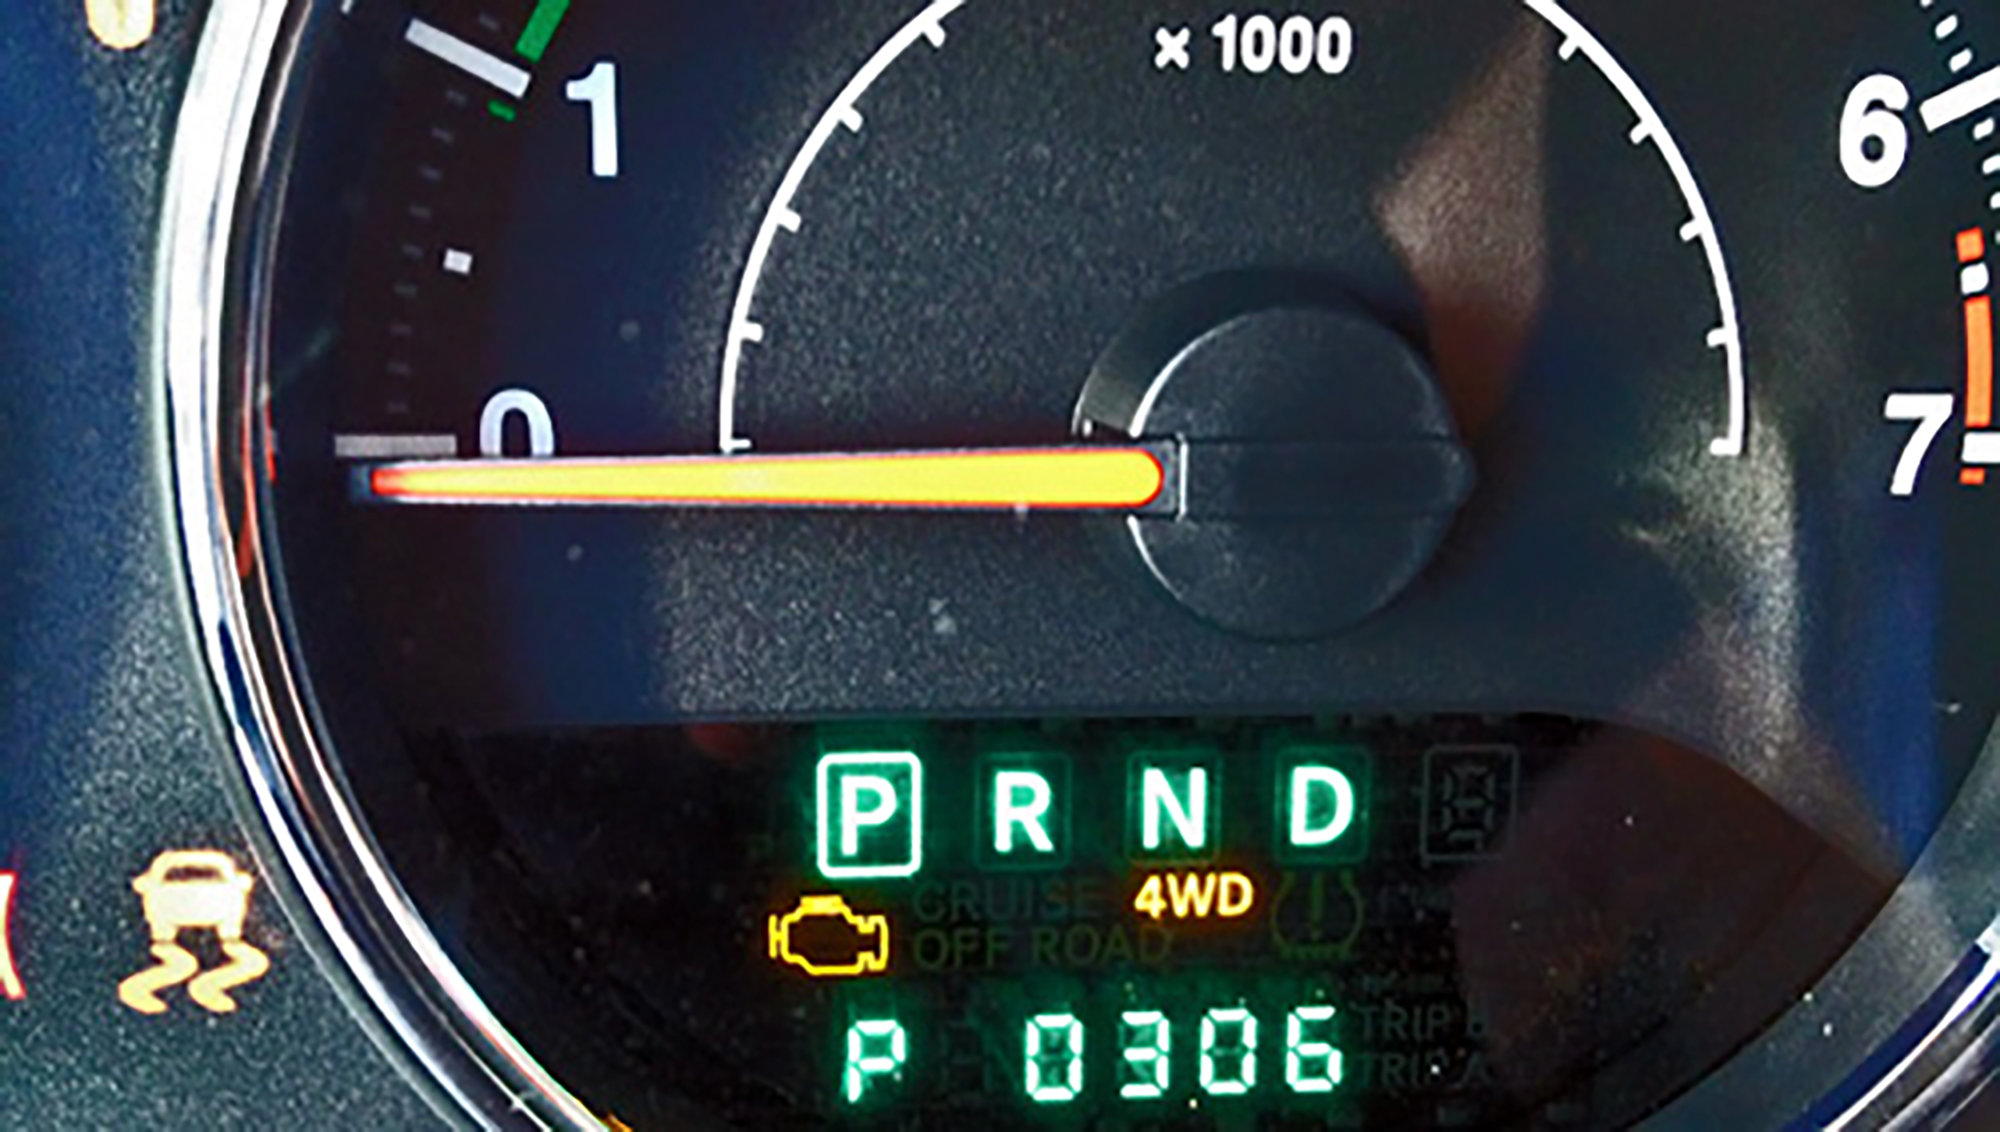 hight resolution of what does it mean if my jeep wrangler jk check engine light comes on quadratec